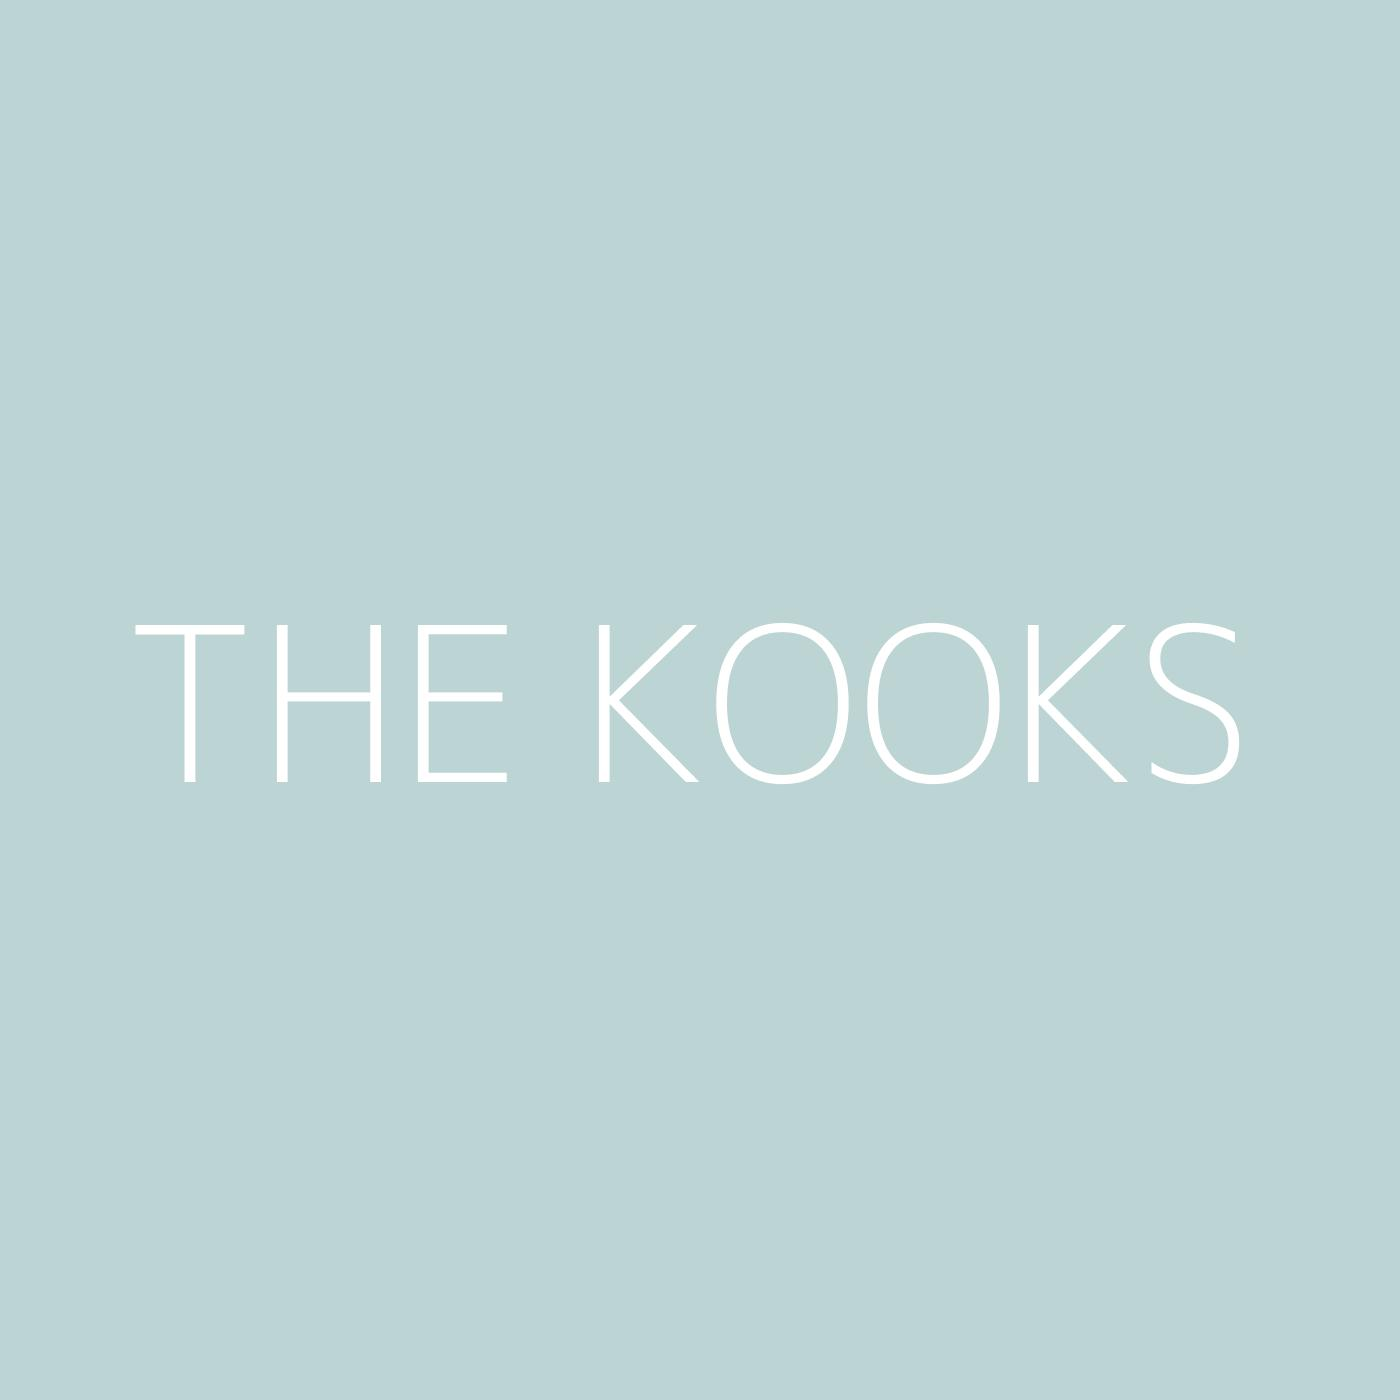 The Kooks Playlist Artwork